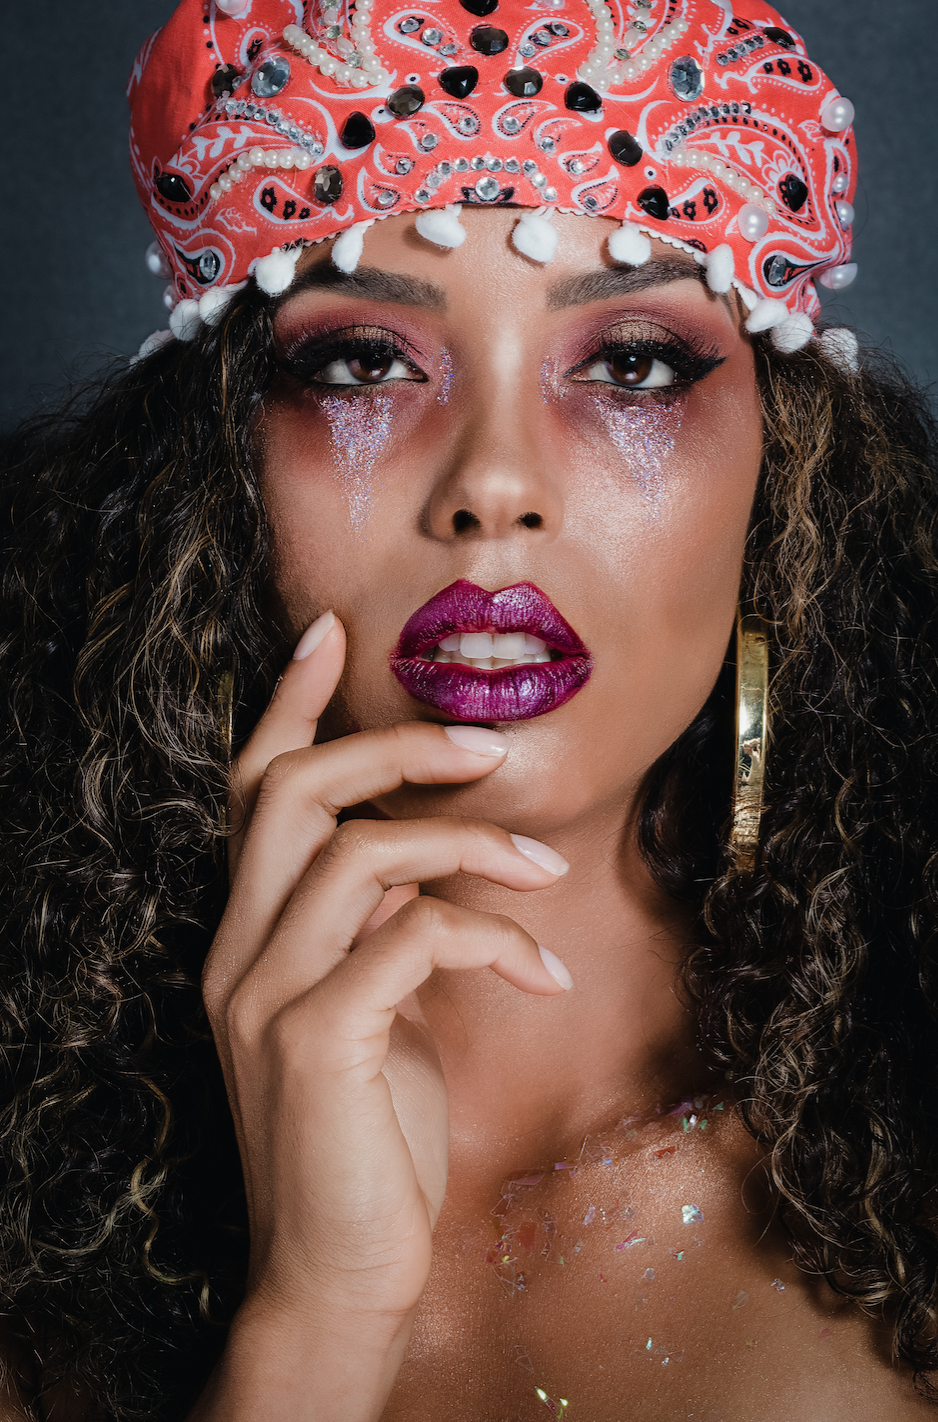 Fortune Teller - Out of all the costume possibilities, the fortune teller look may be the easiest to achieve for the most casual makeup user. If you have already mastered a basic smokey eye look, the fortune teller costume is for you!